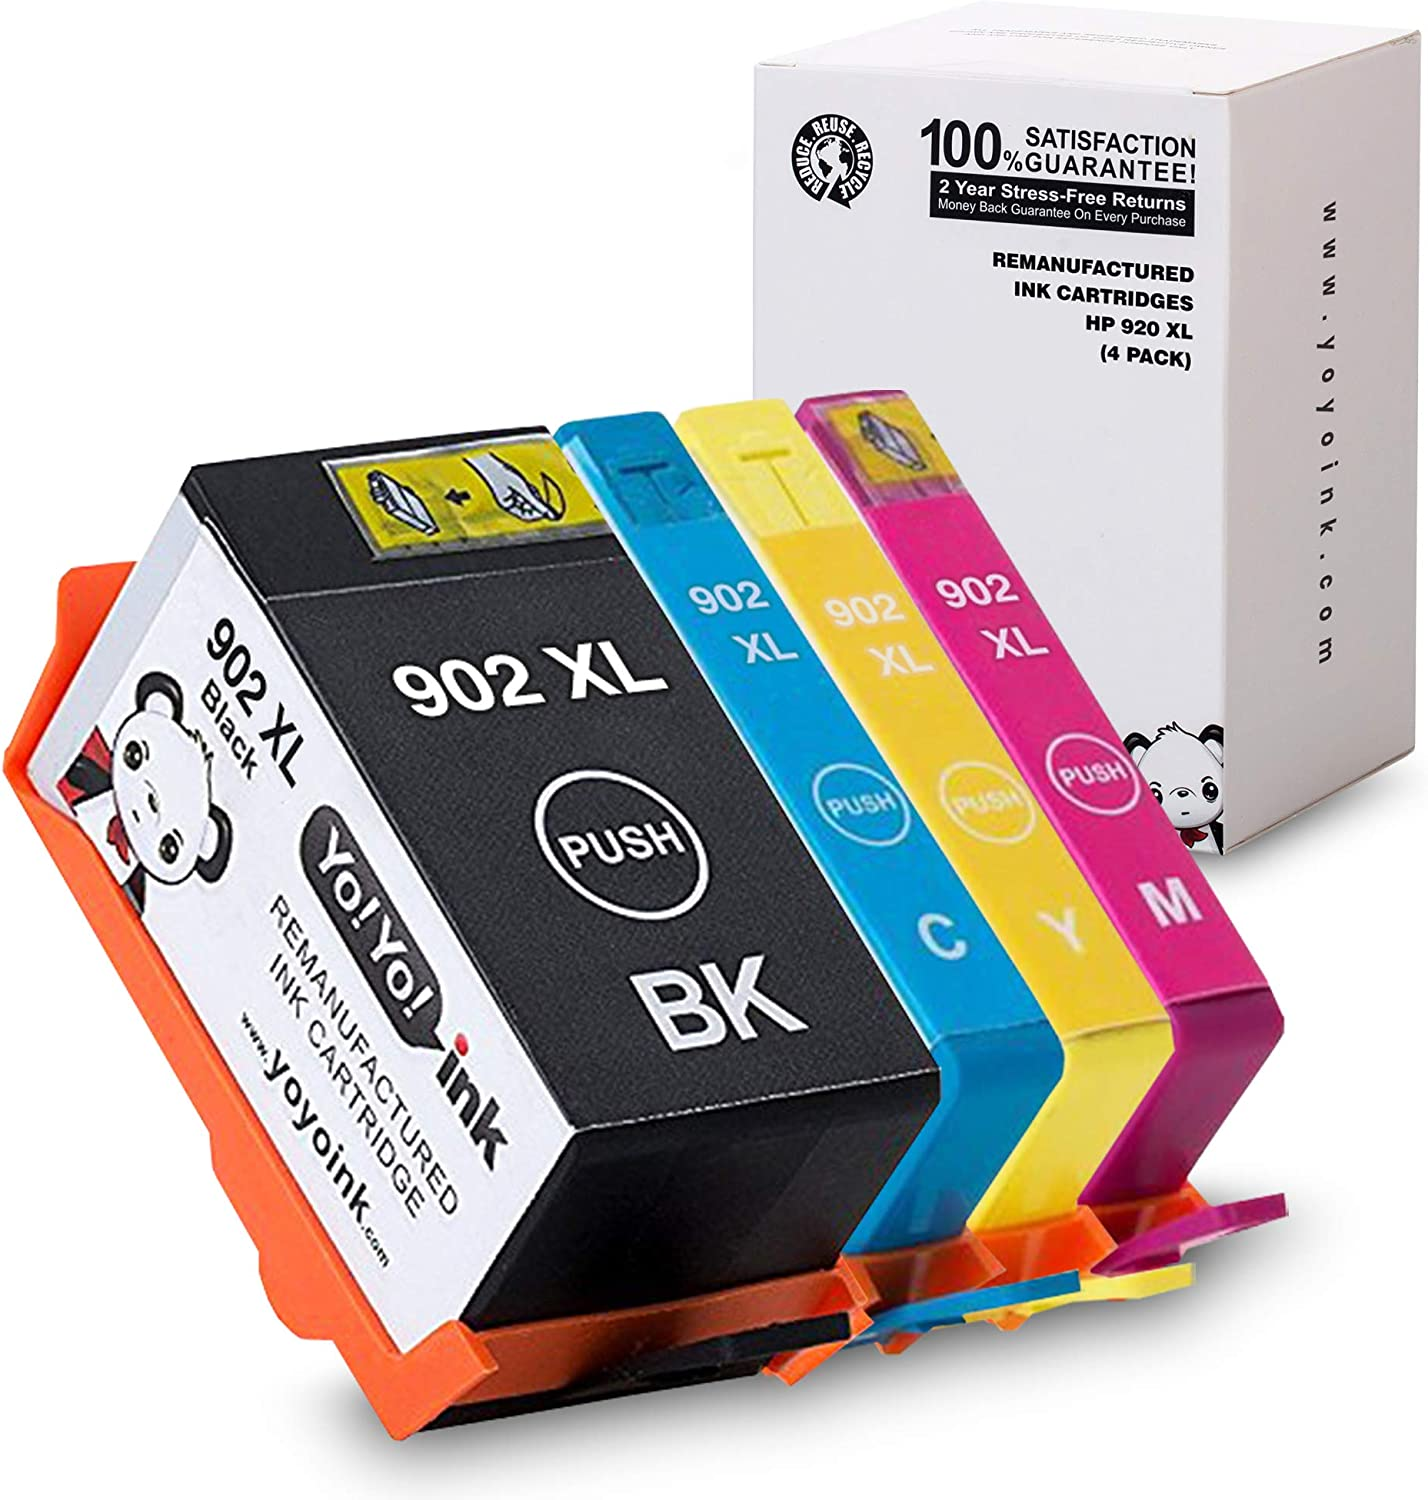 YoYoInk Remanufactured Ink Cartridge Replacement for HP 902 XL 902XL HP902XL (4 Combo Pack) Use with HP Officejet Pro 6978, 6968, 6962, 6958, 6970, 6975, 6954, 6950 Printers (1 Black, 3 Color)